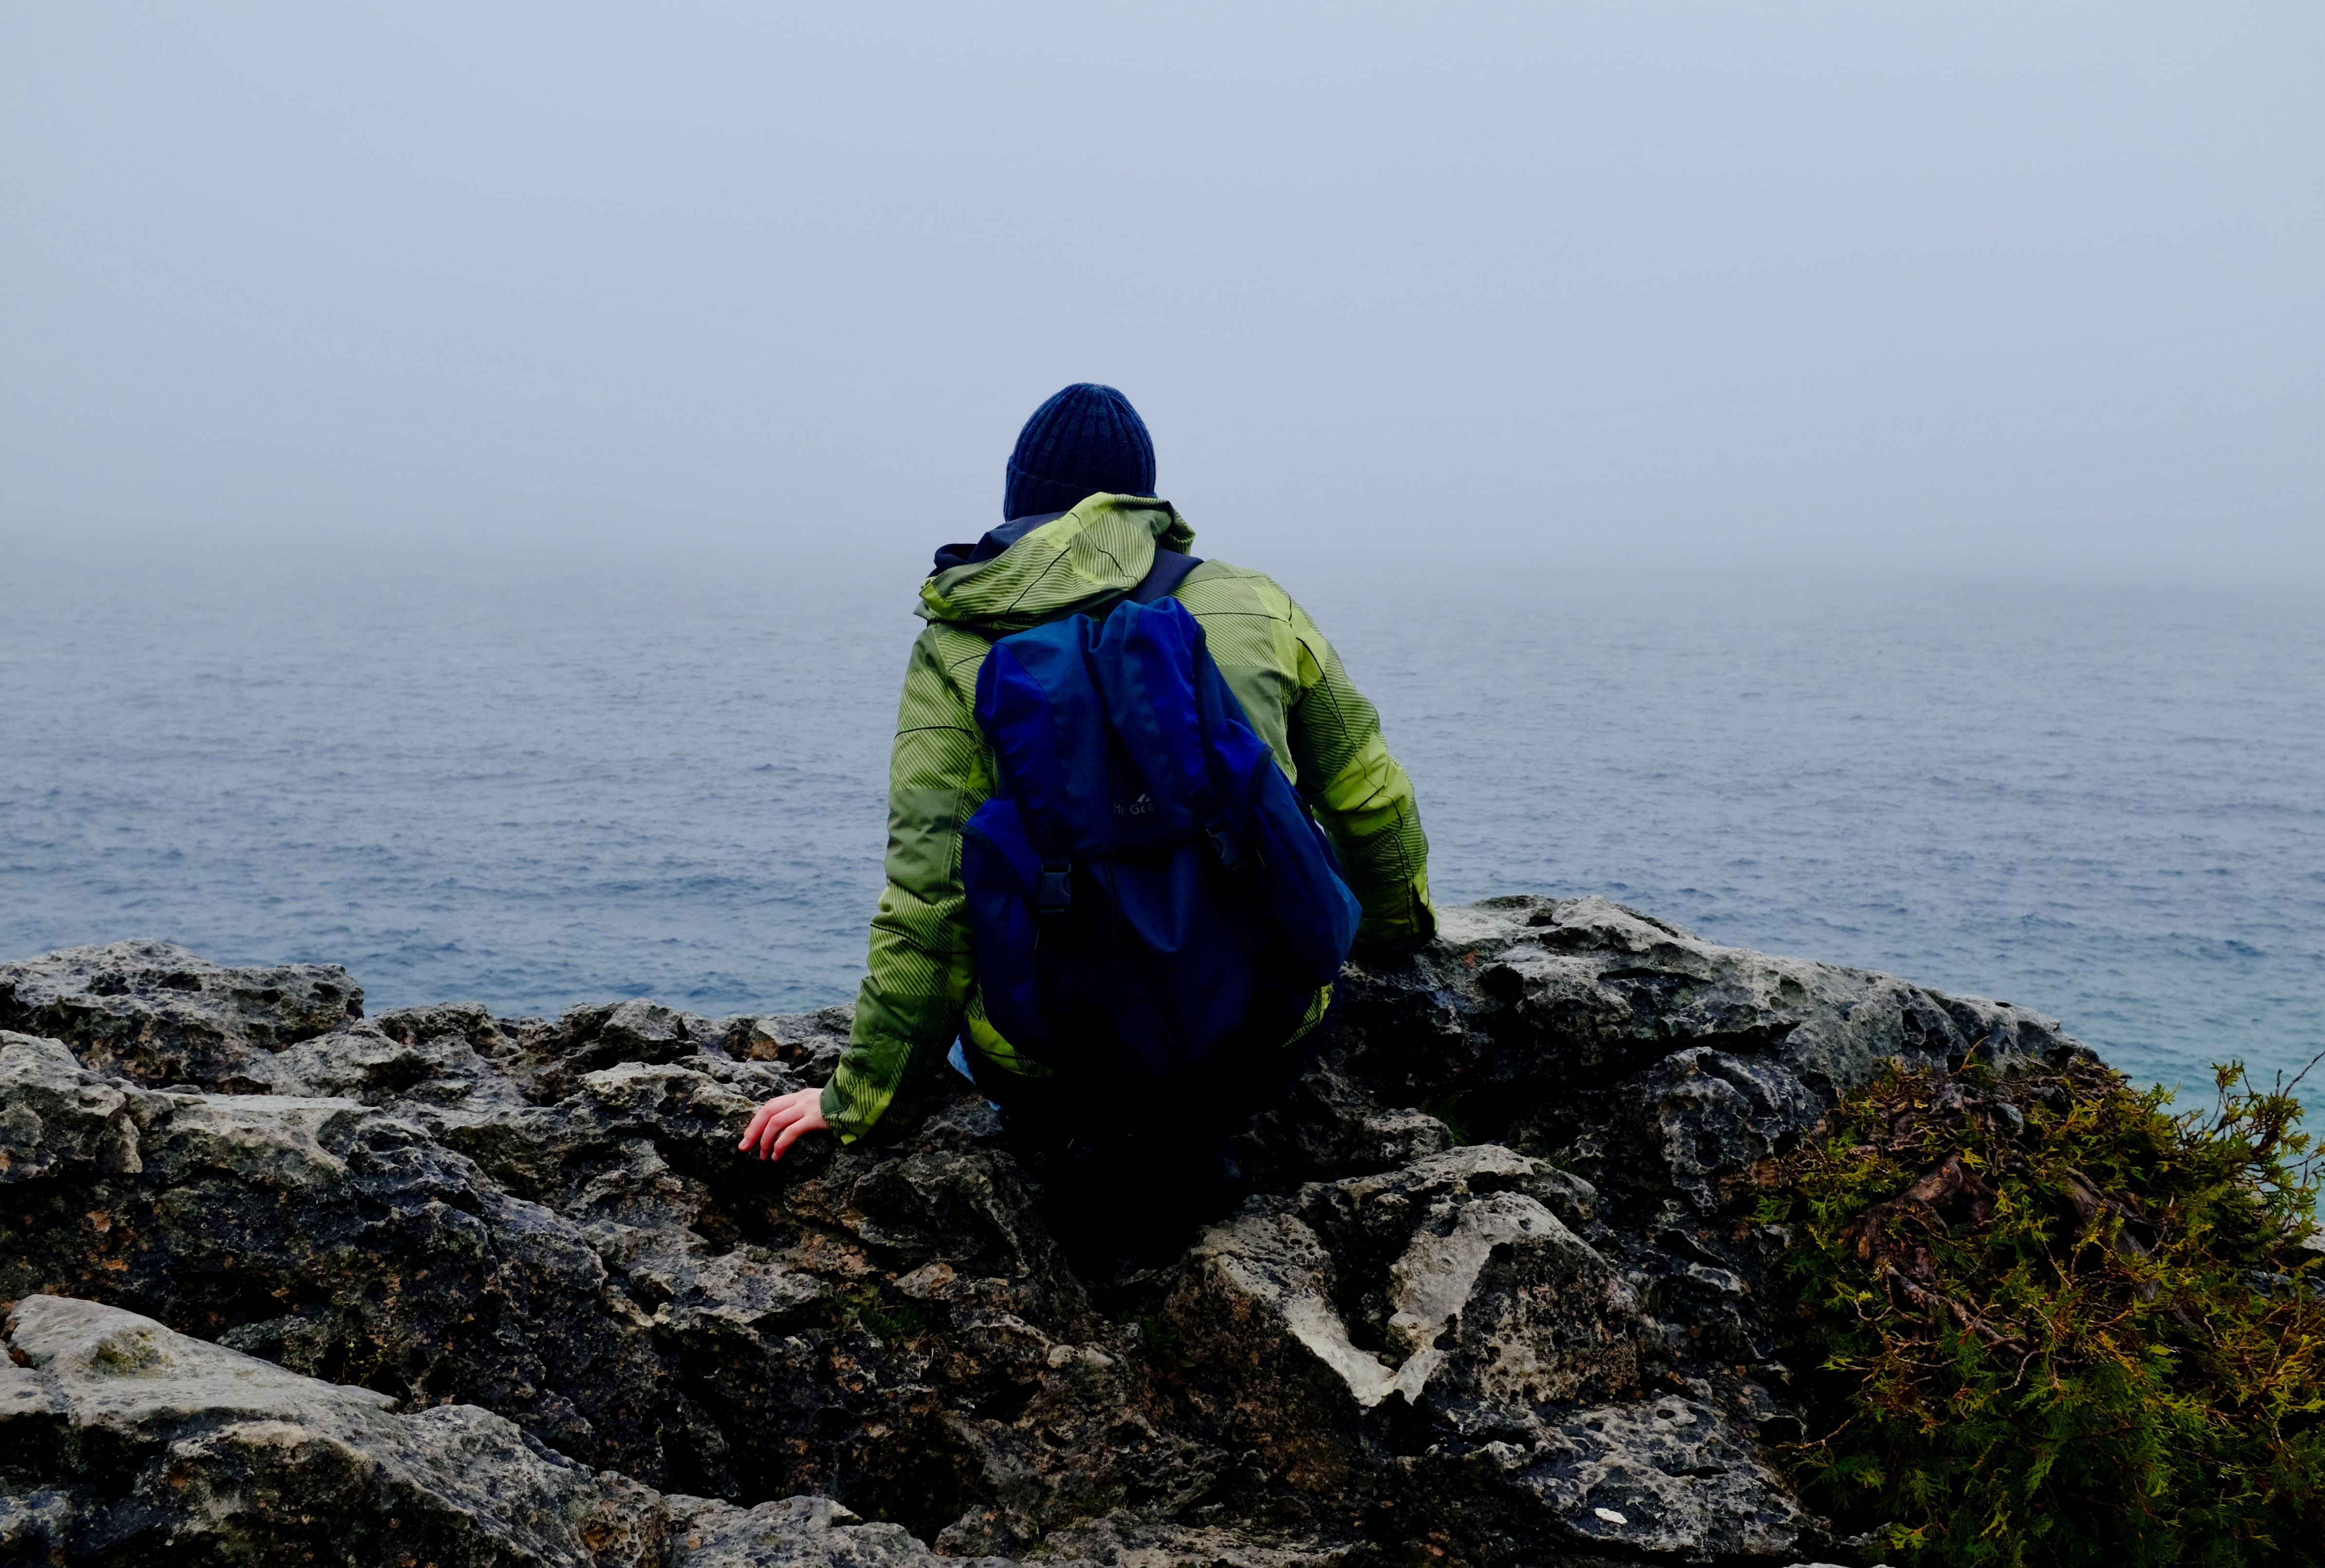 A person sitting on a rock by the sea with a foggy sky at The Grotto